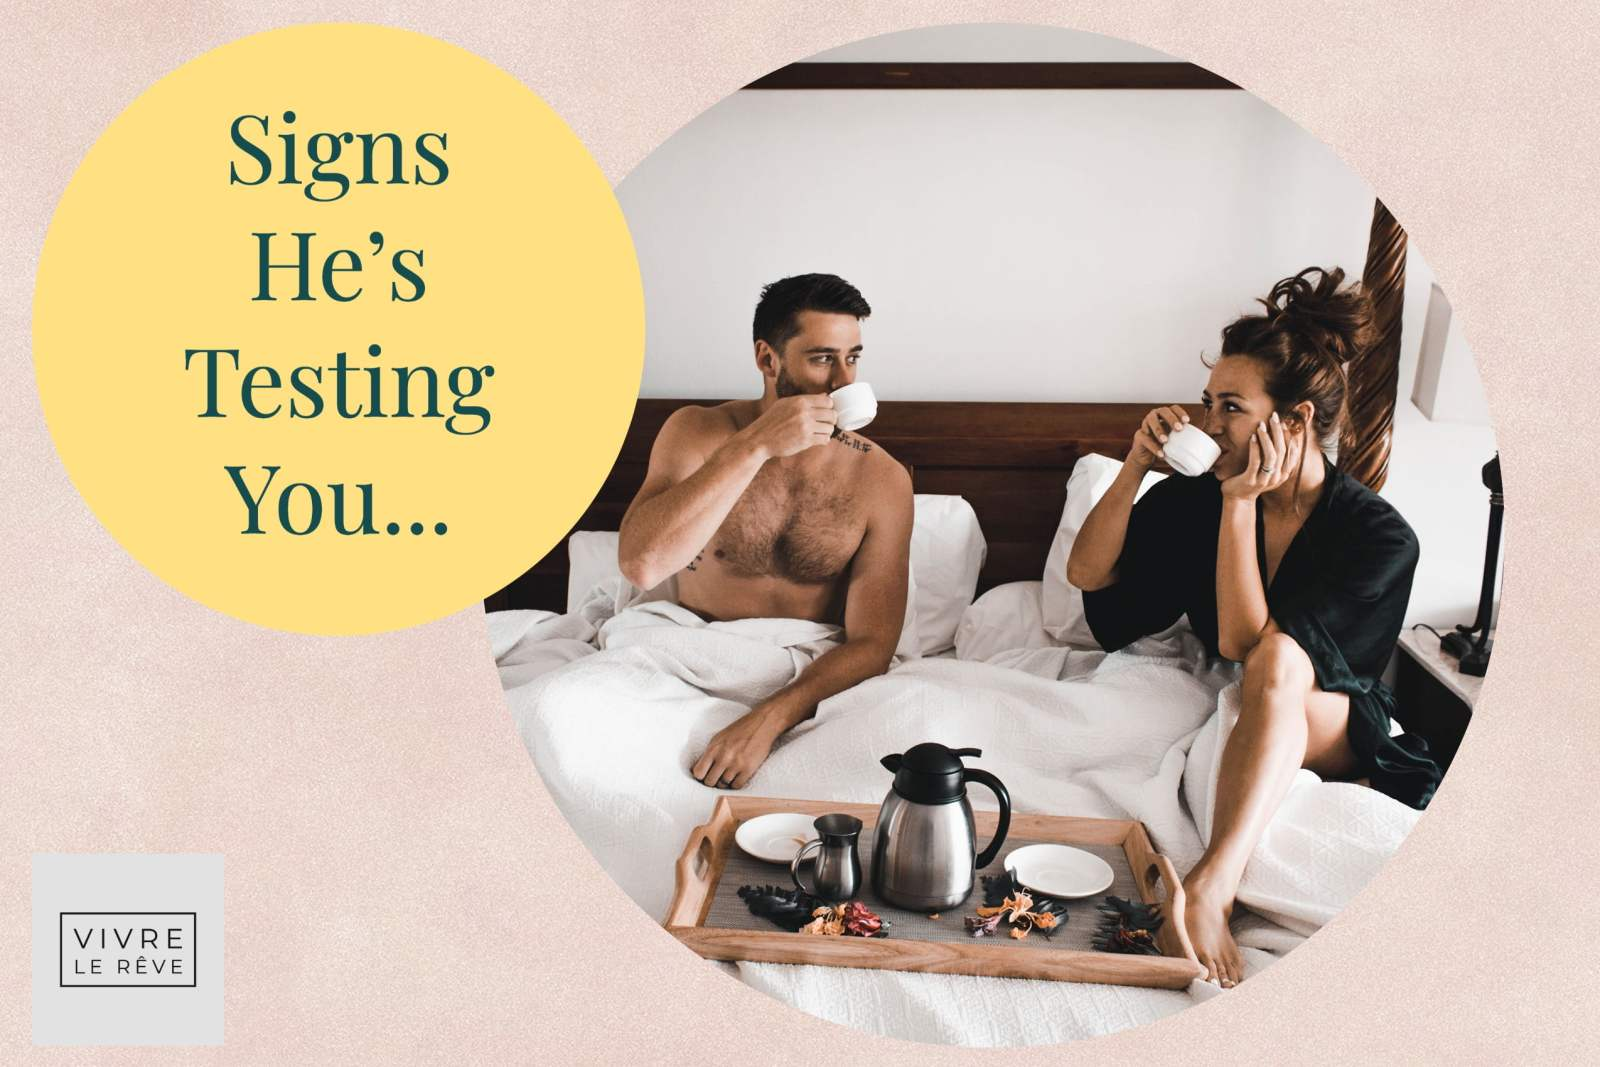 Signs He's Testing You...